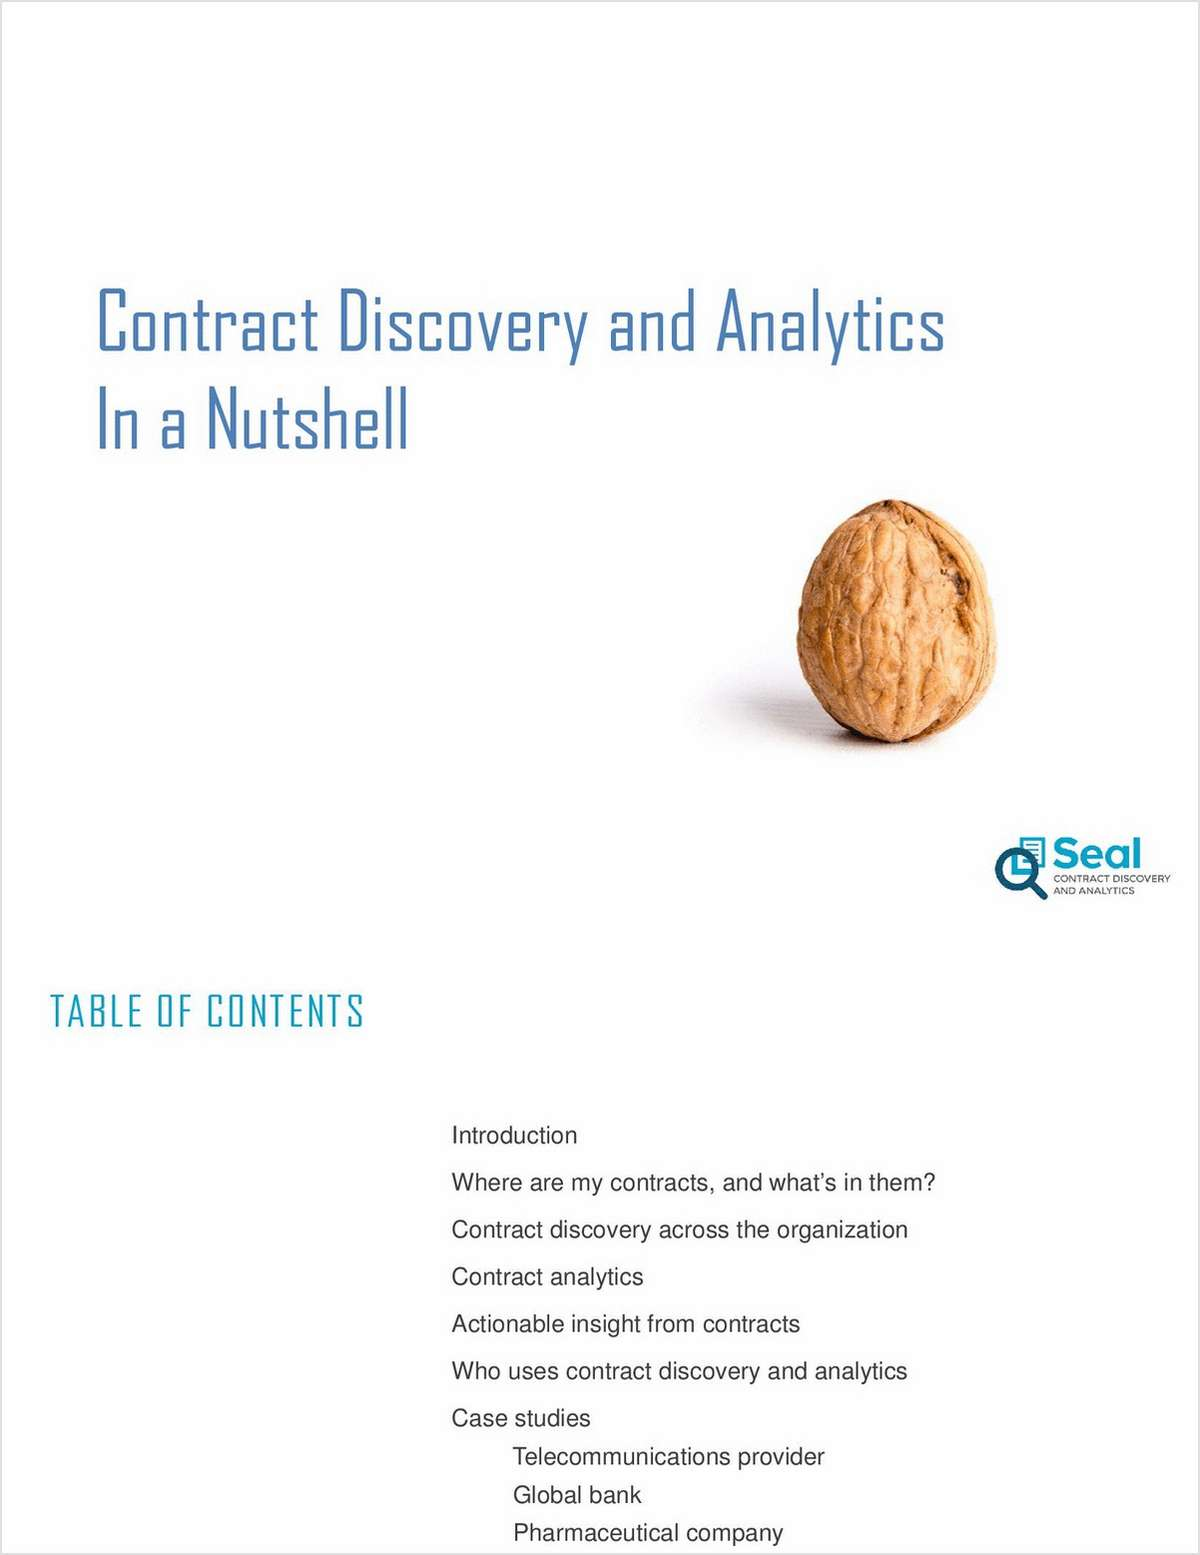 Contract Discovery and Analytics in a Nutshell